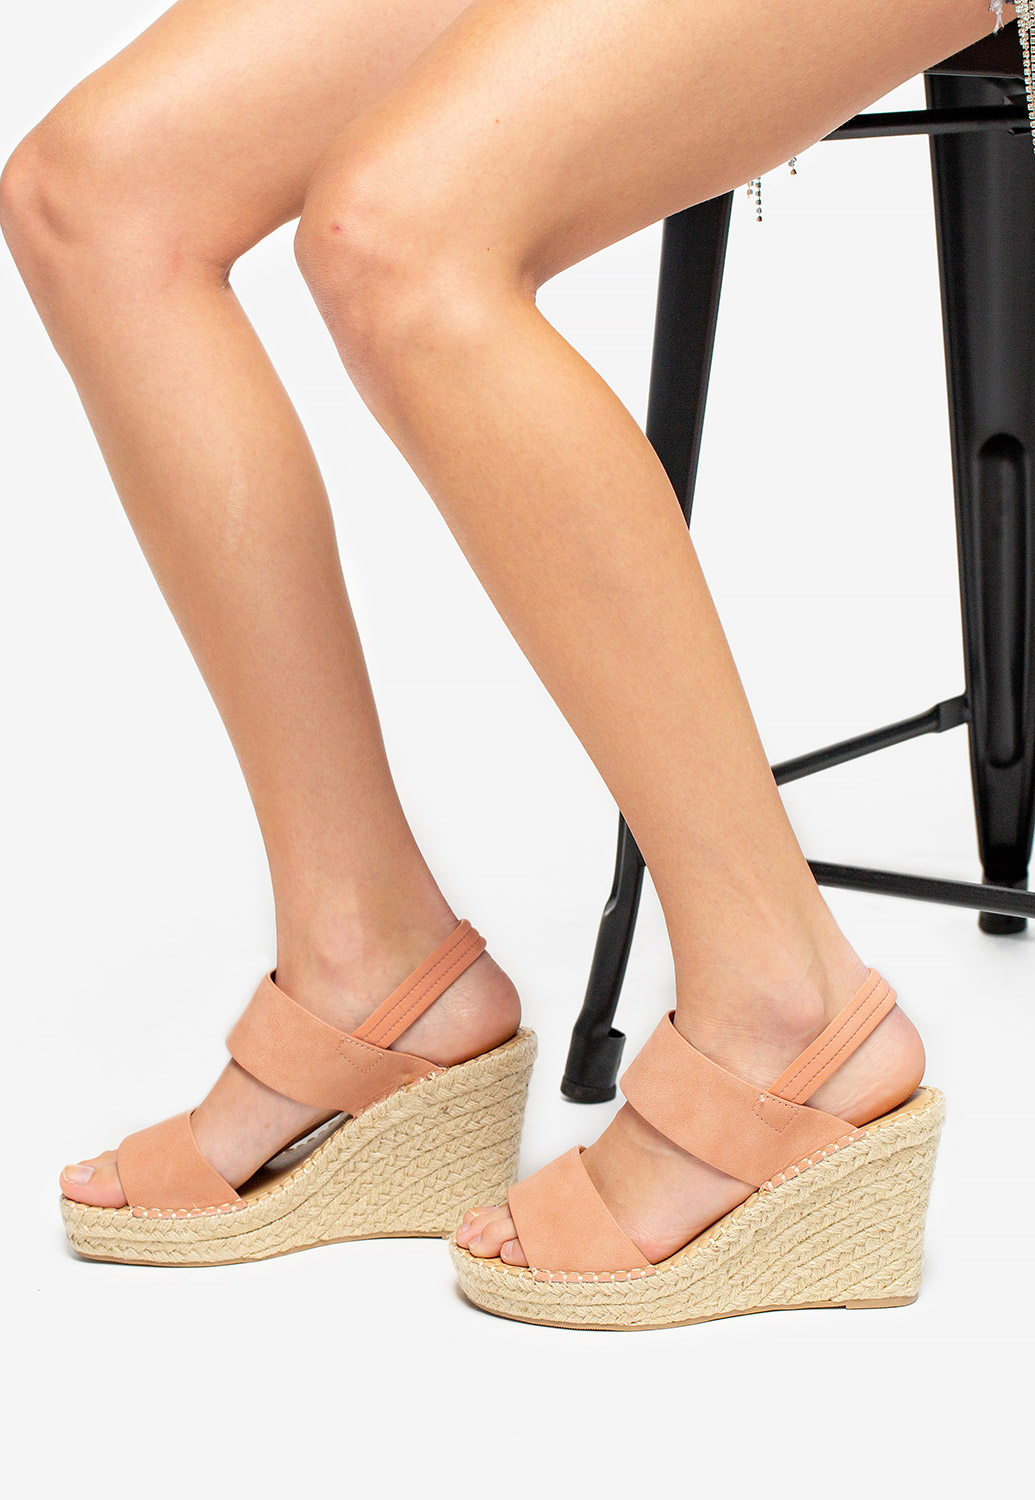 Dual Strap Wedge Sandals